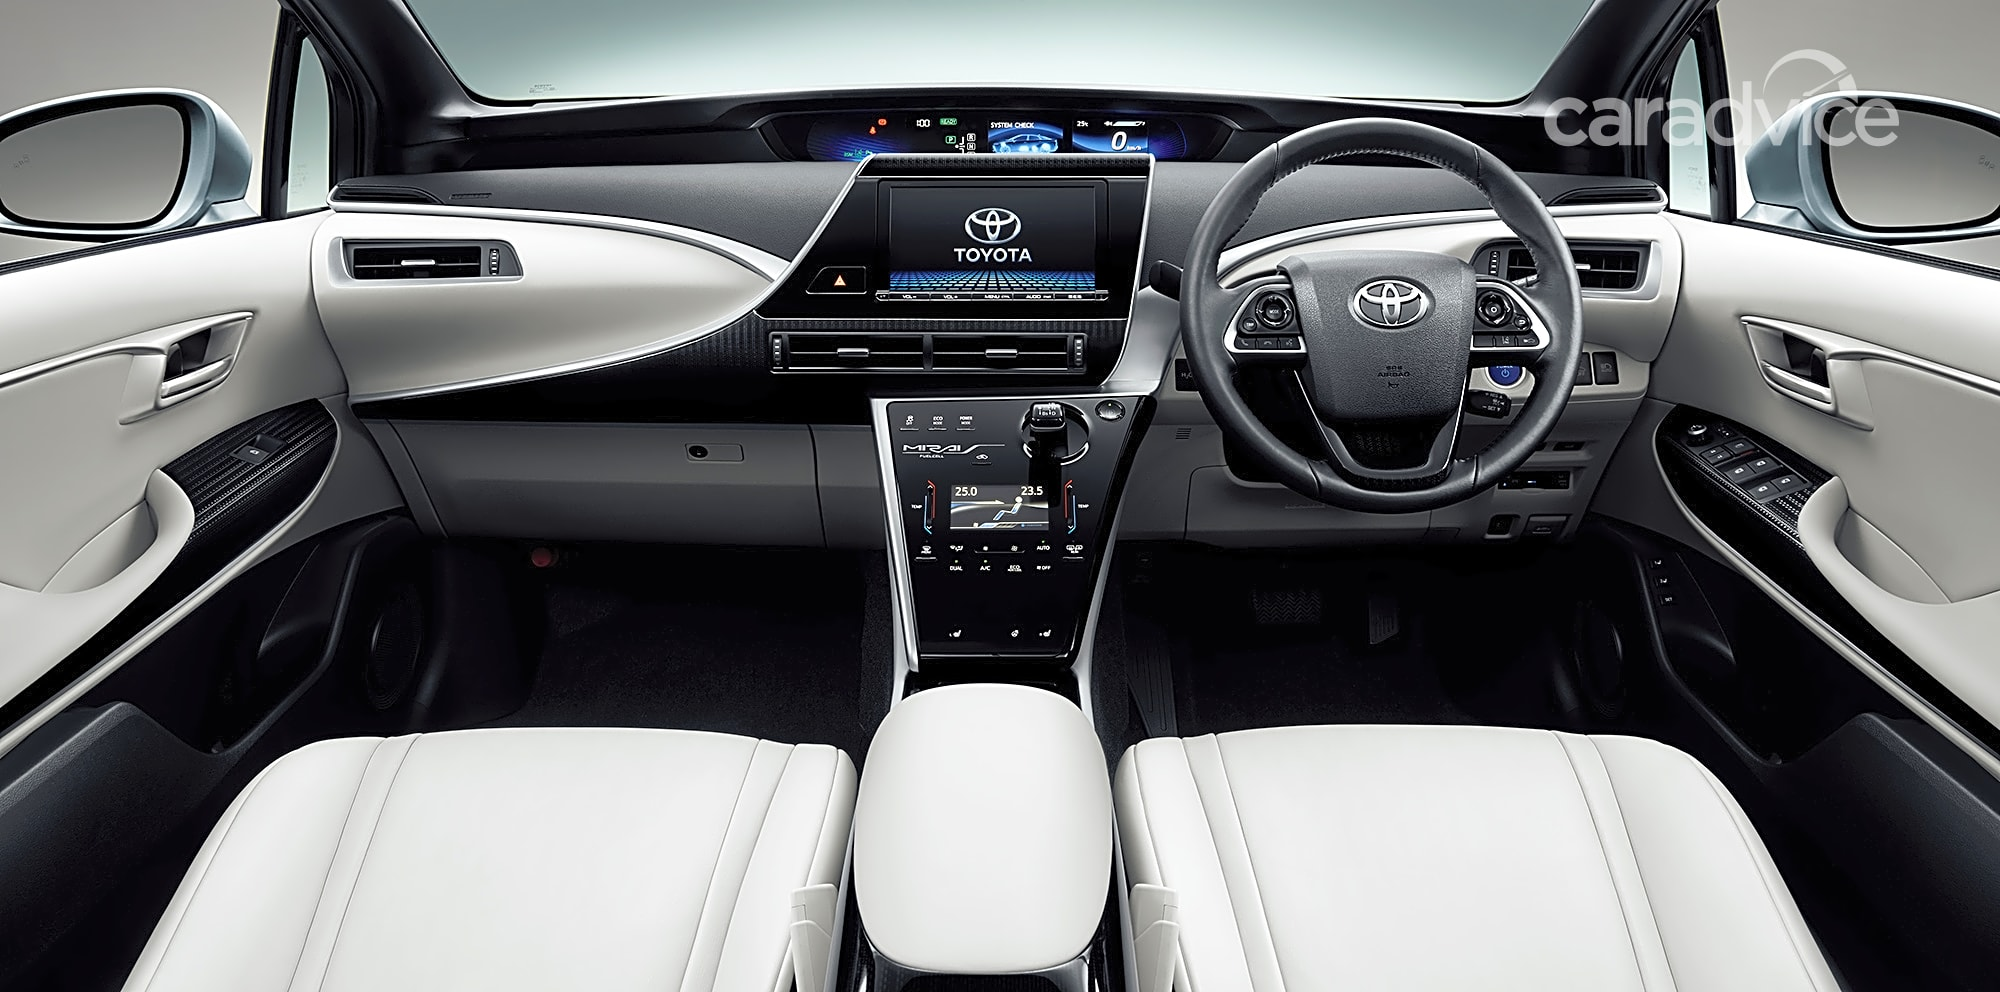 Prado Auto Sales >> Toyota Mirai hydrogen fuel-cell vehicle detailed in full ...